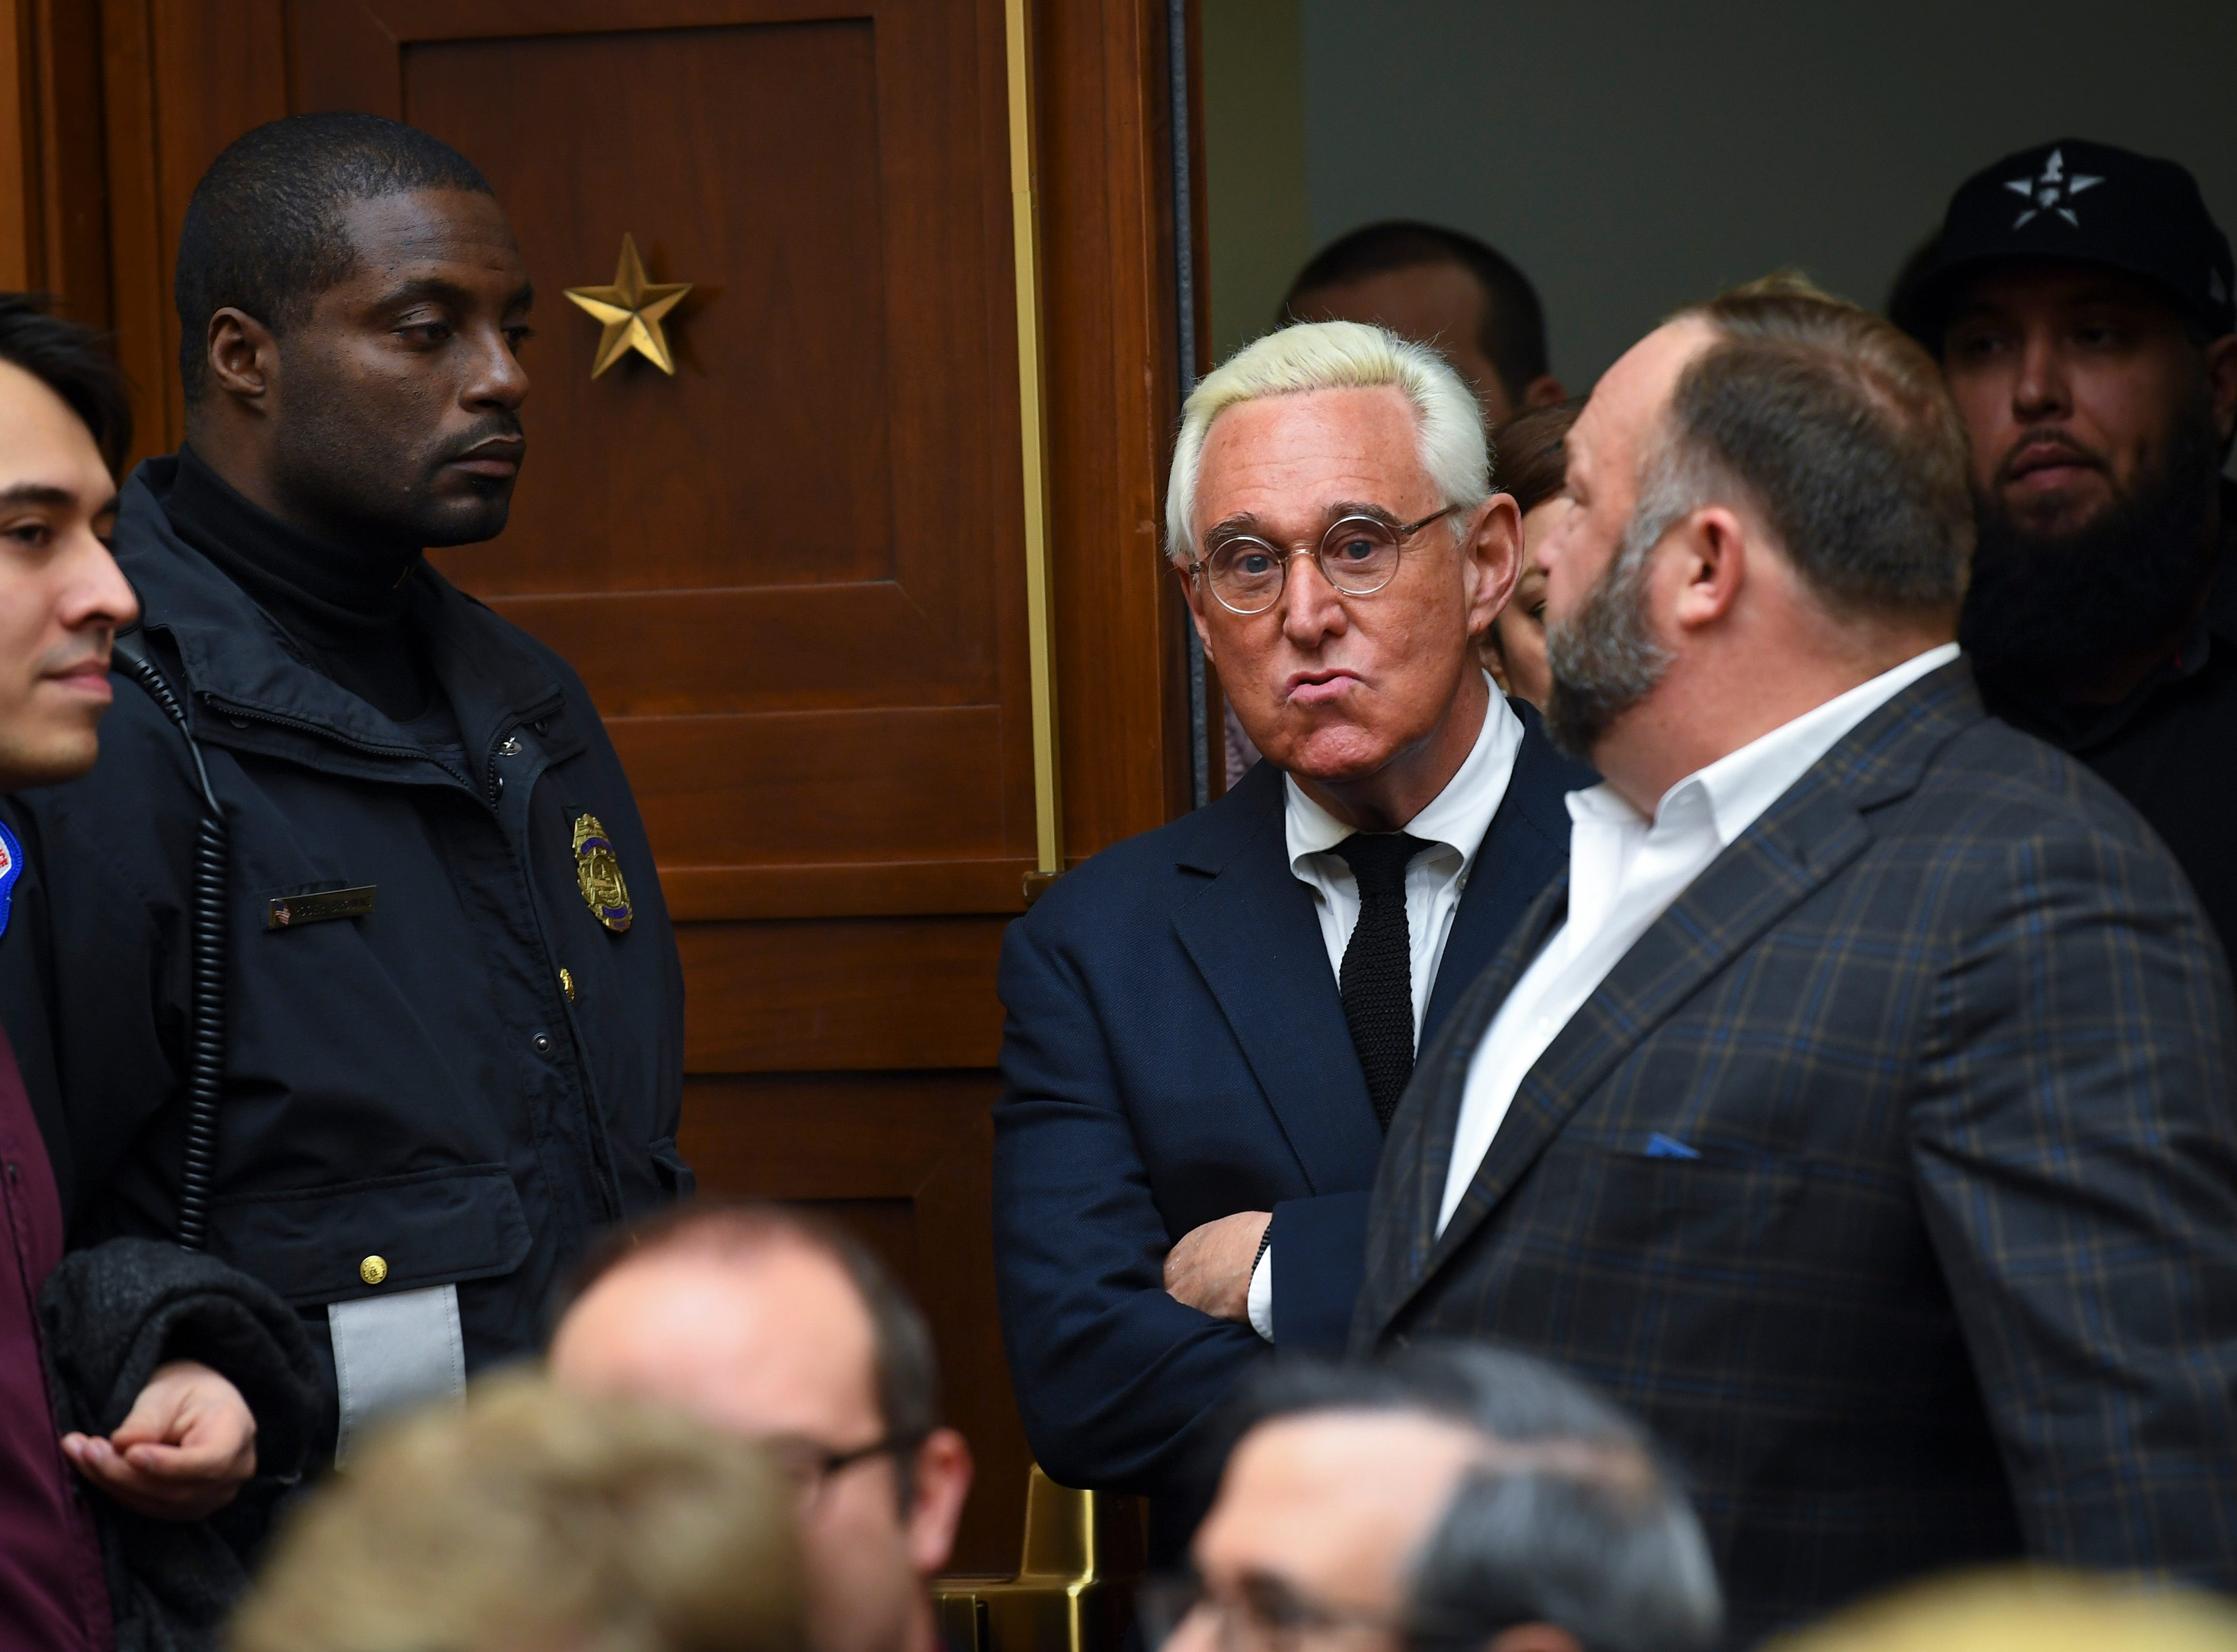 Roger Stone, center, and Alex Jones, right, arrive to sit in the public seating as Sundar Pichai, chief executive officer of Google, testifies to House Judiciary Committee about the company's data collection practices on Dec. 11, 2018 in Washington.